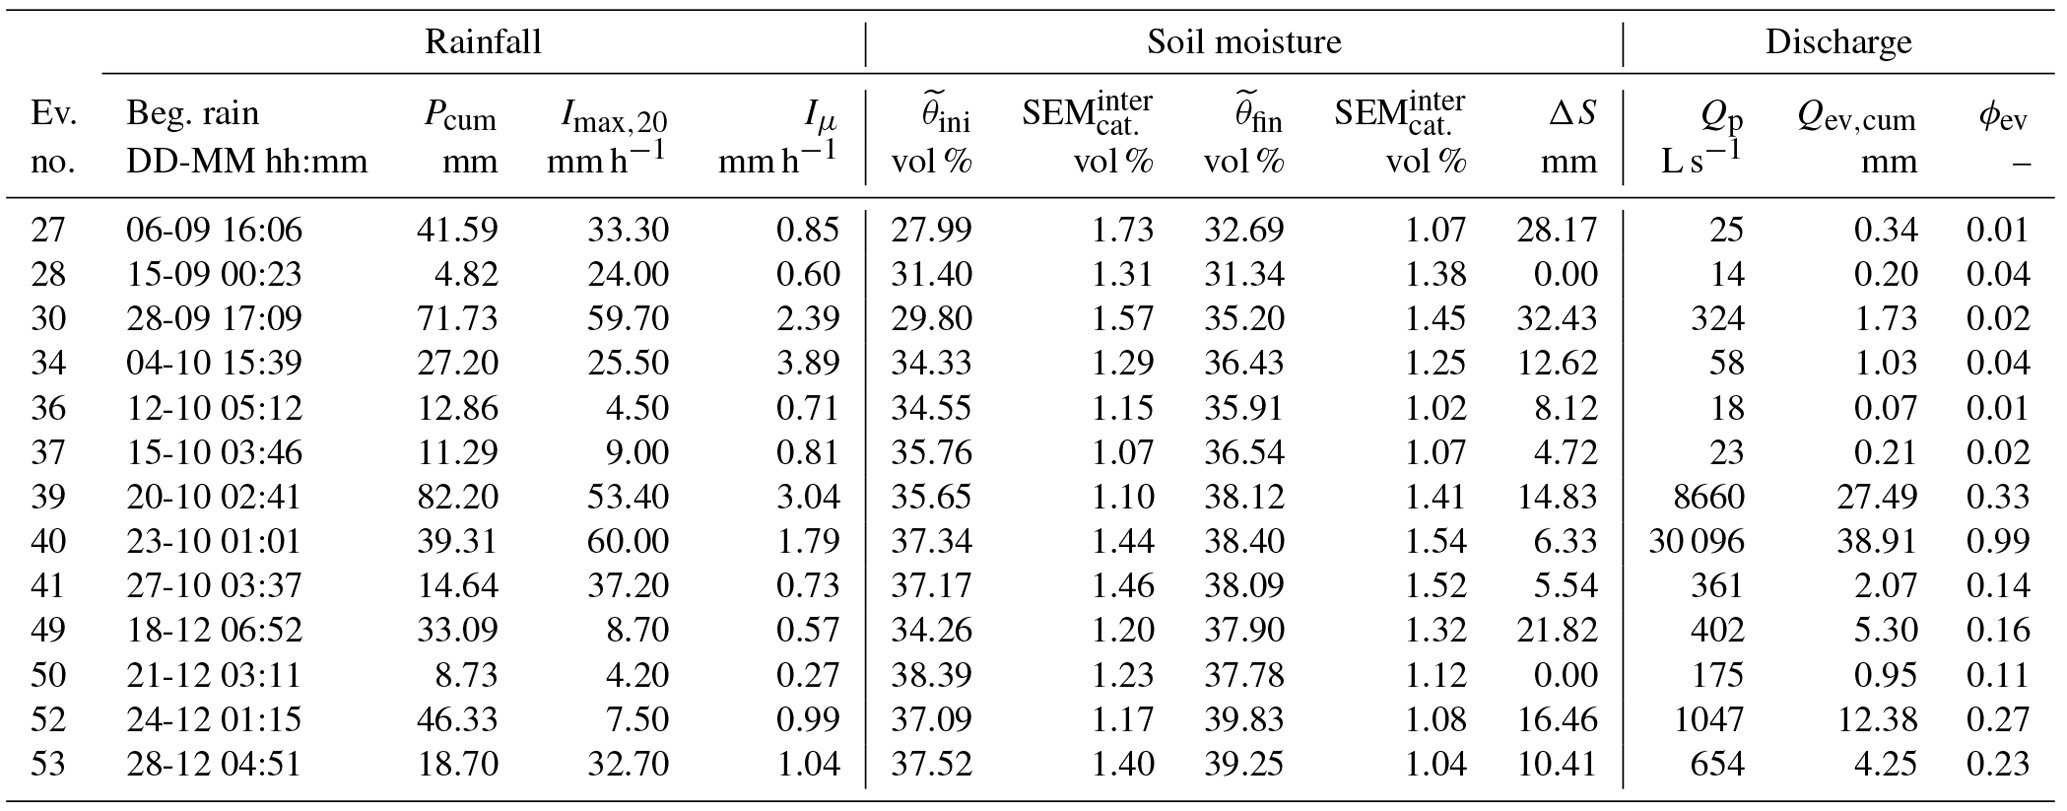 HESS - How does initial soil moisture influence the hydrological